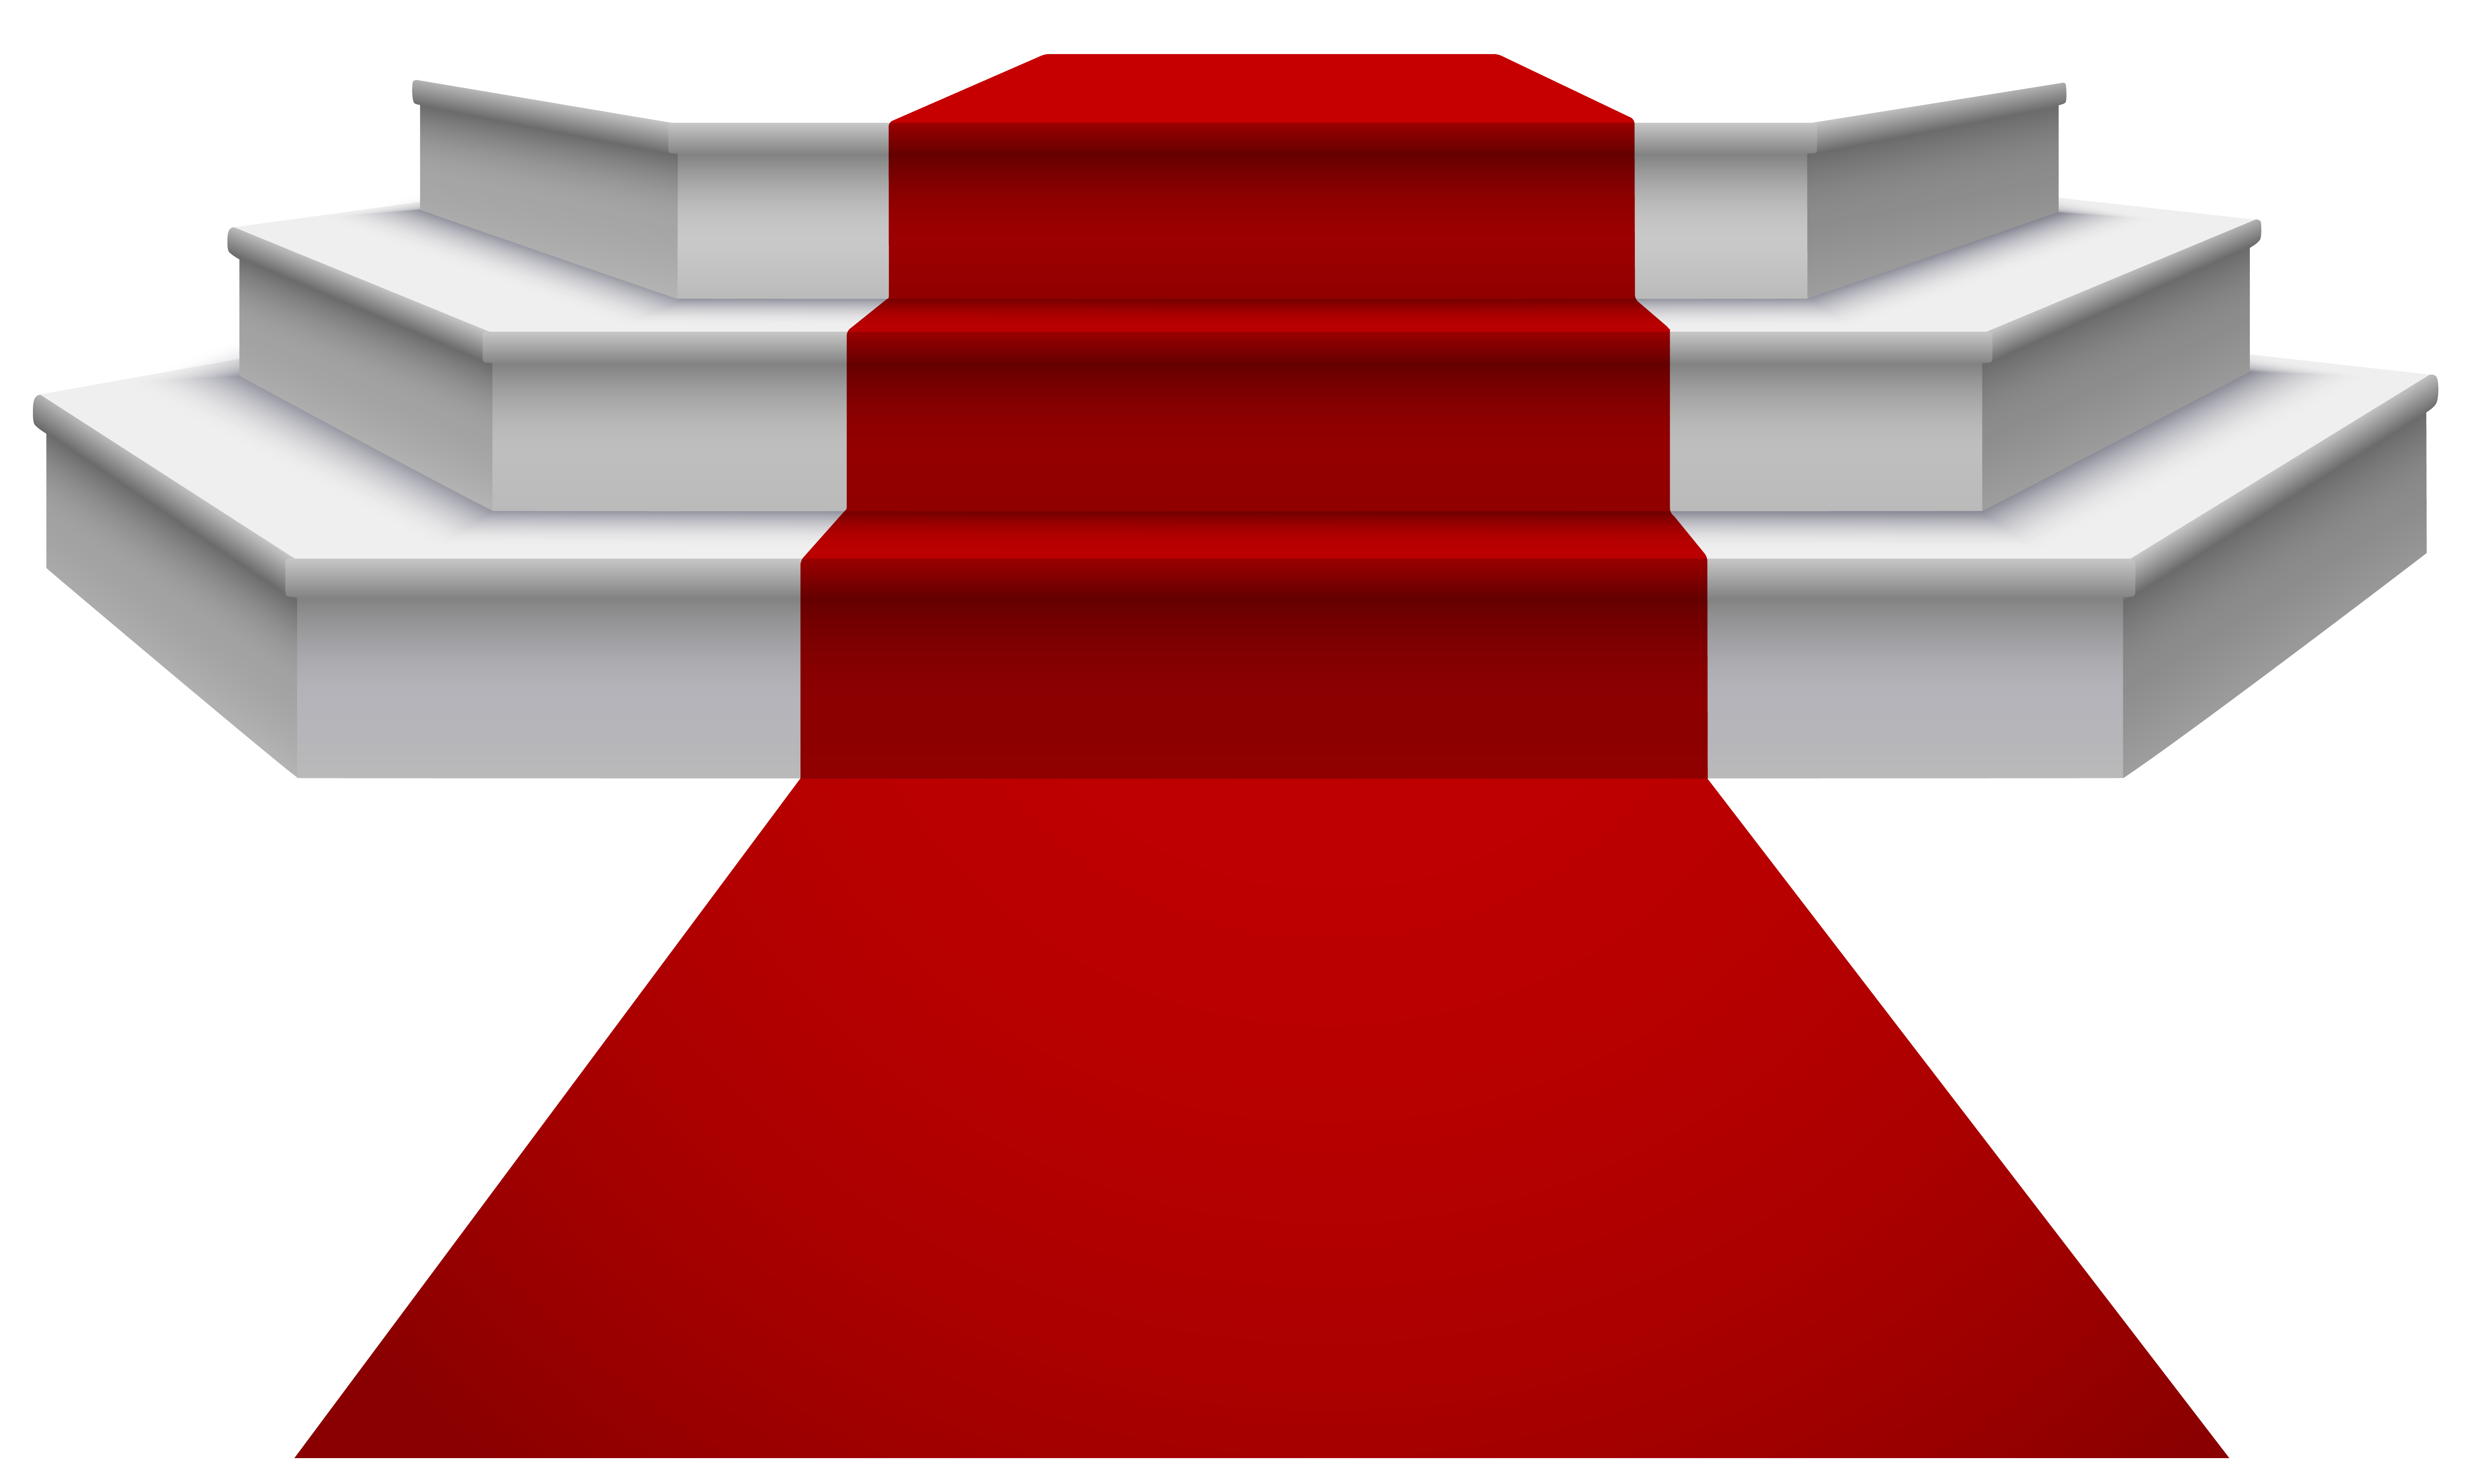 Staircase clipart christmas. Red carpet transparent transparentpng